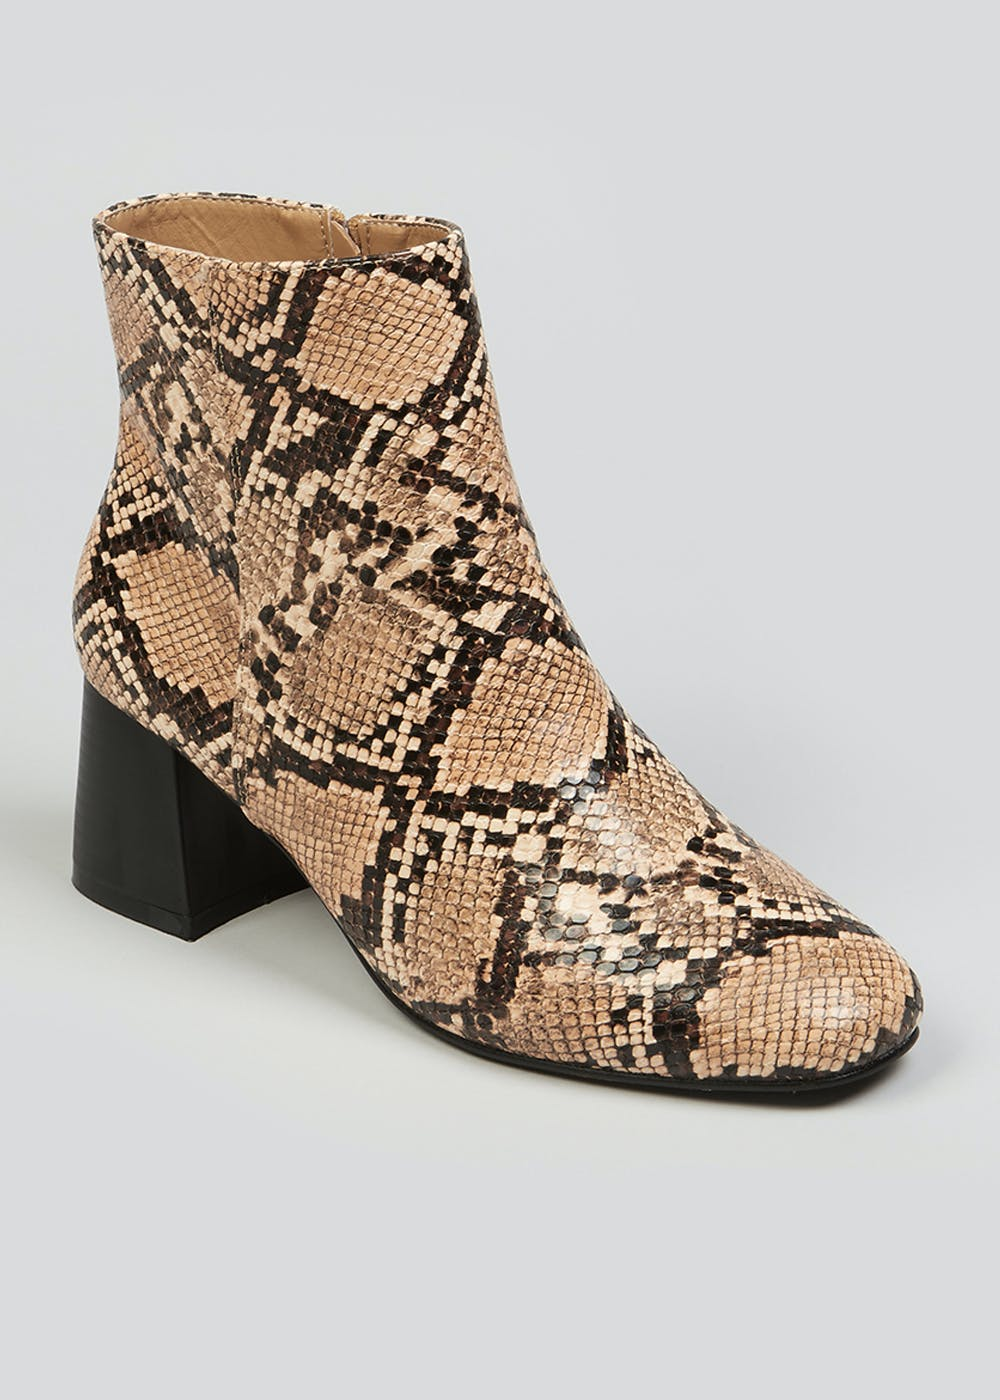 Chloé Rylee Cutout Snake-effect Leather Ankle Boots In